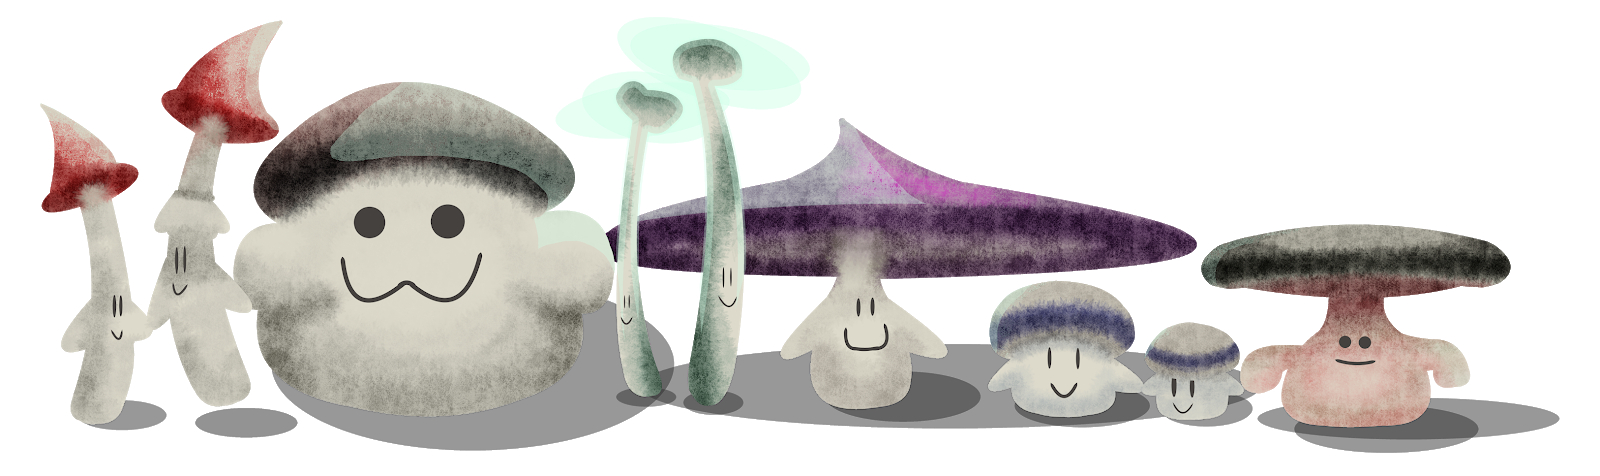 https://www.deviantart.com/rhukii/art/Shrooms-in-a-row-792993577